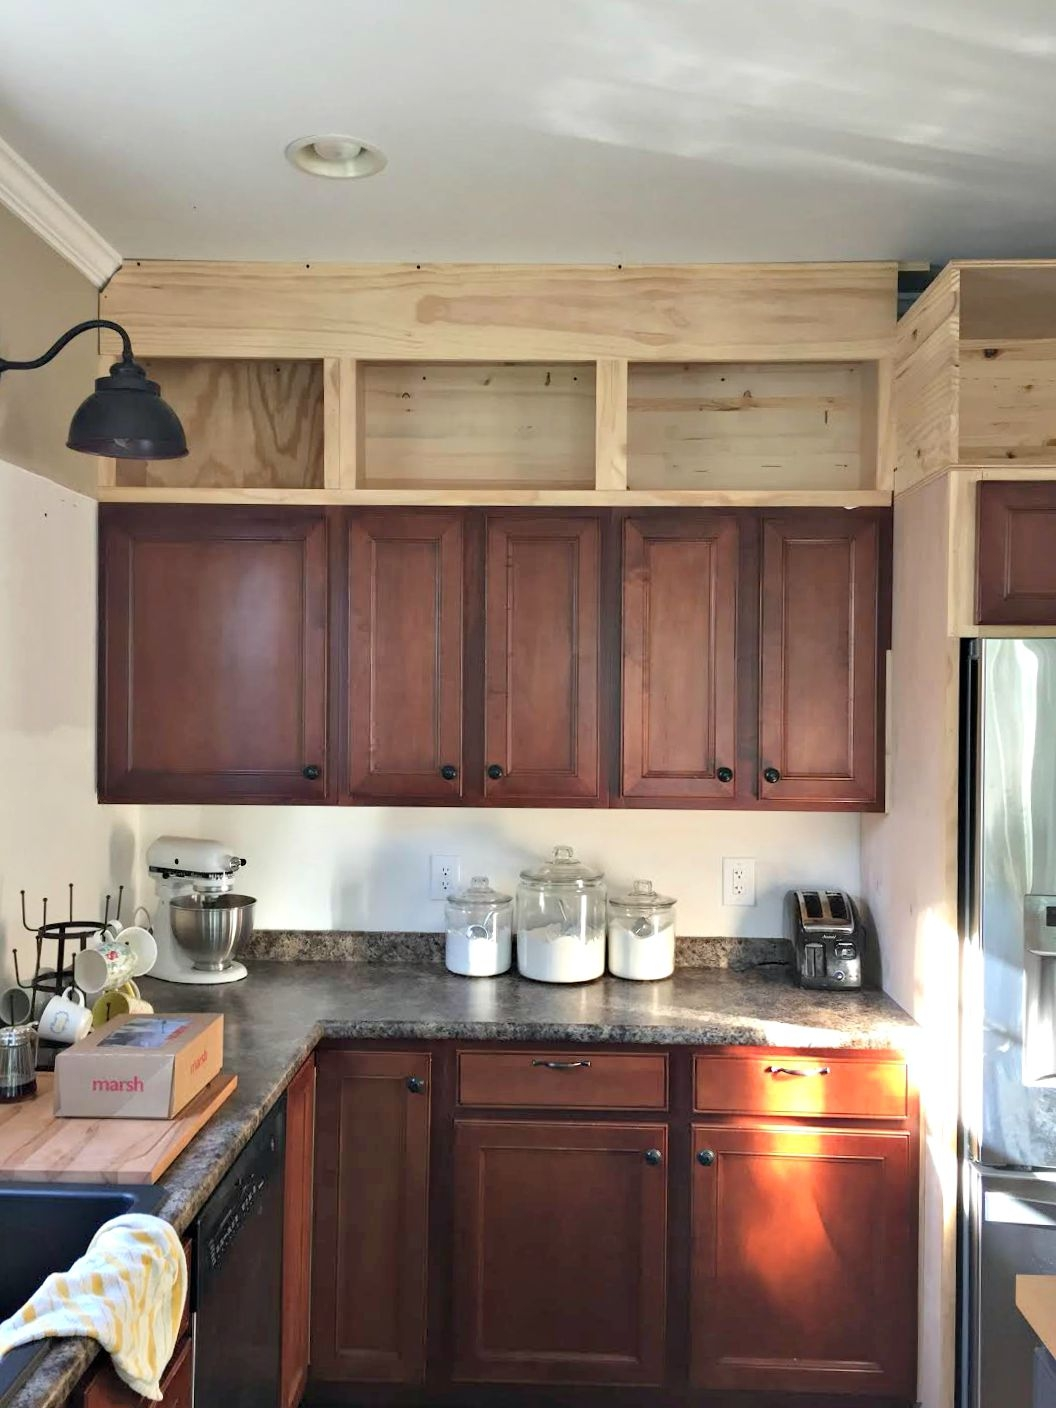 Adding Additional Kitchen Cabinetsbuilding cabinets up to the ceiling from thrifty decor chick